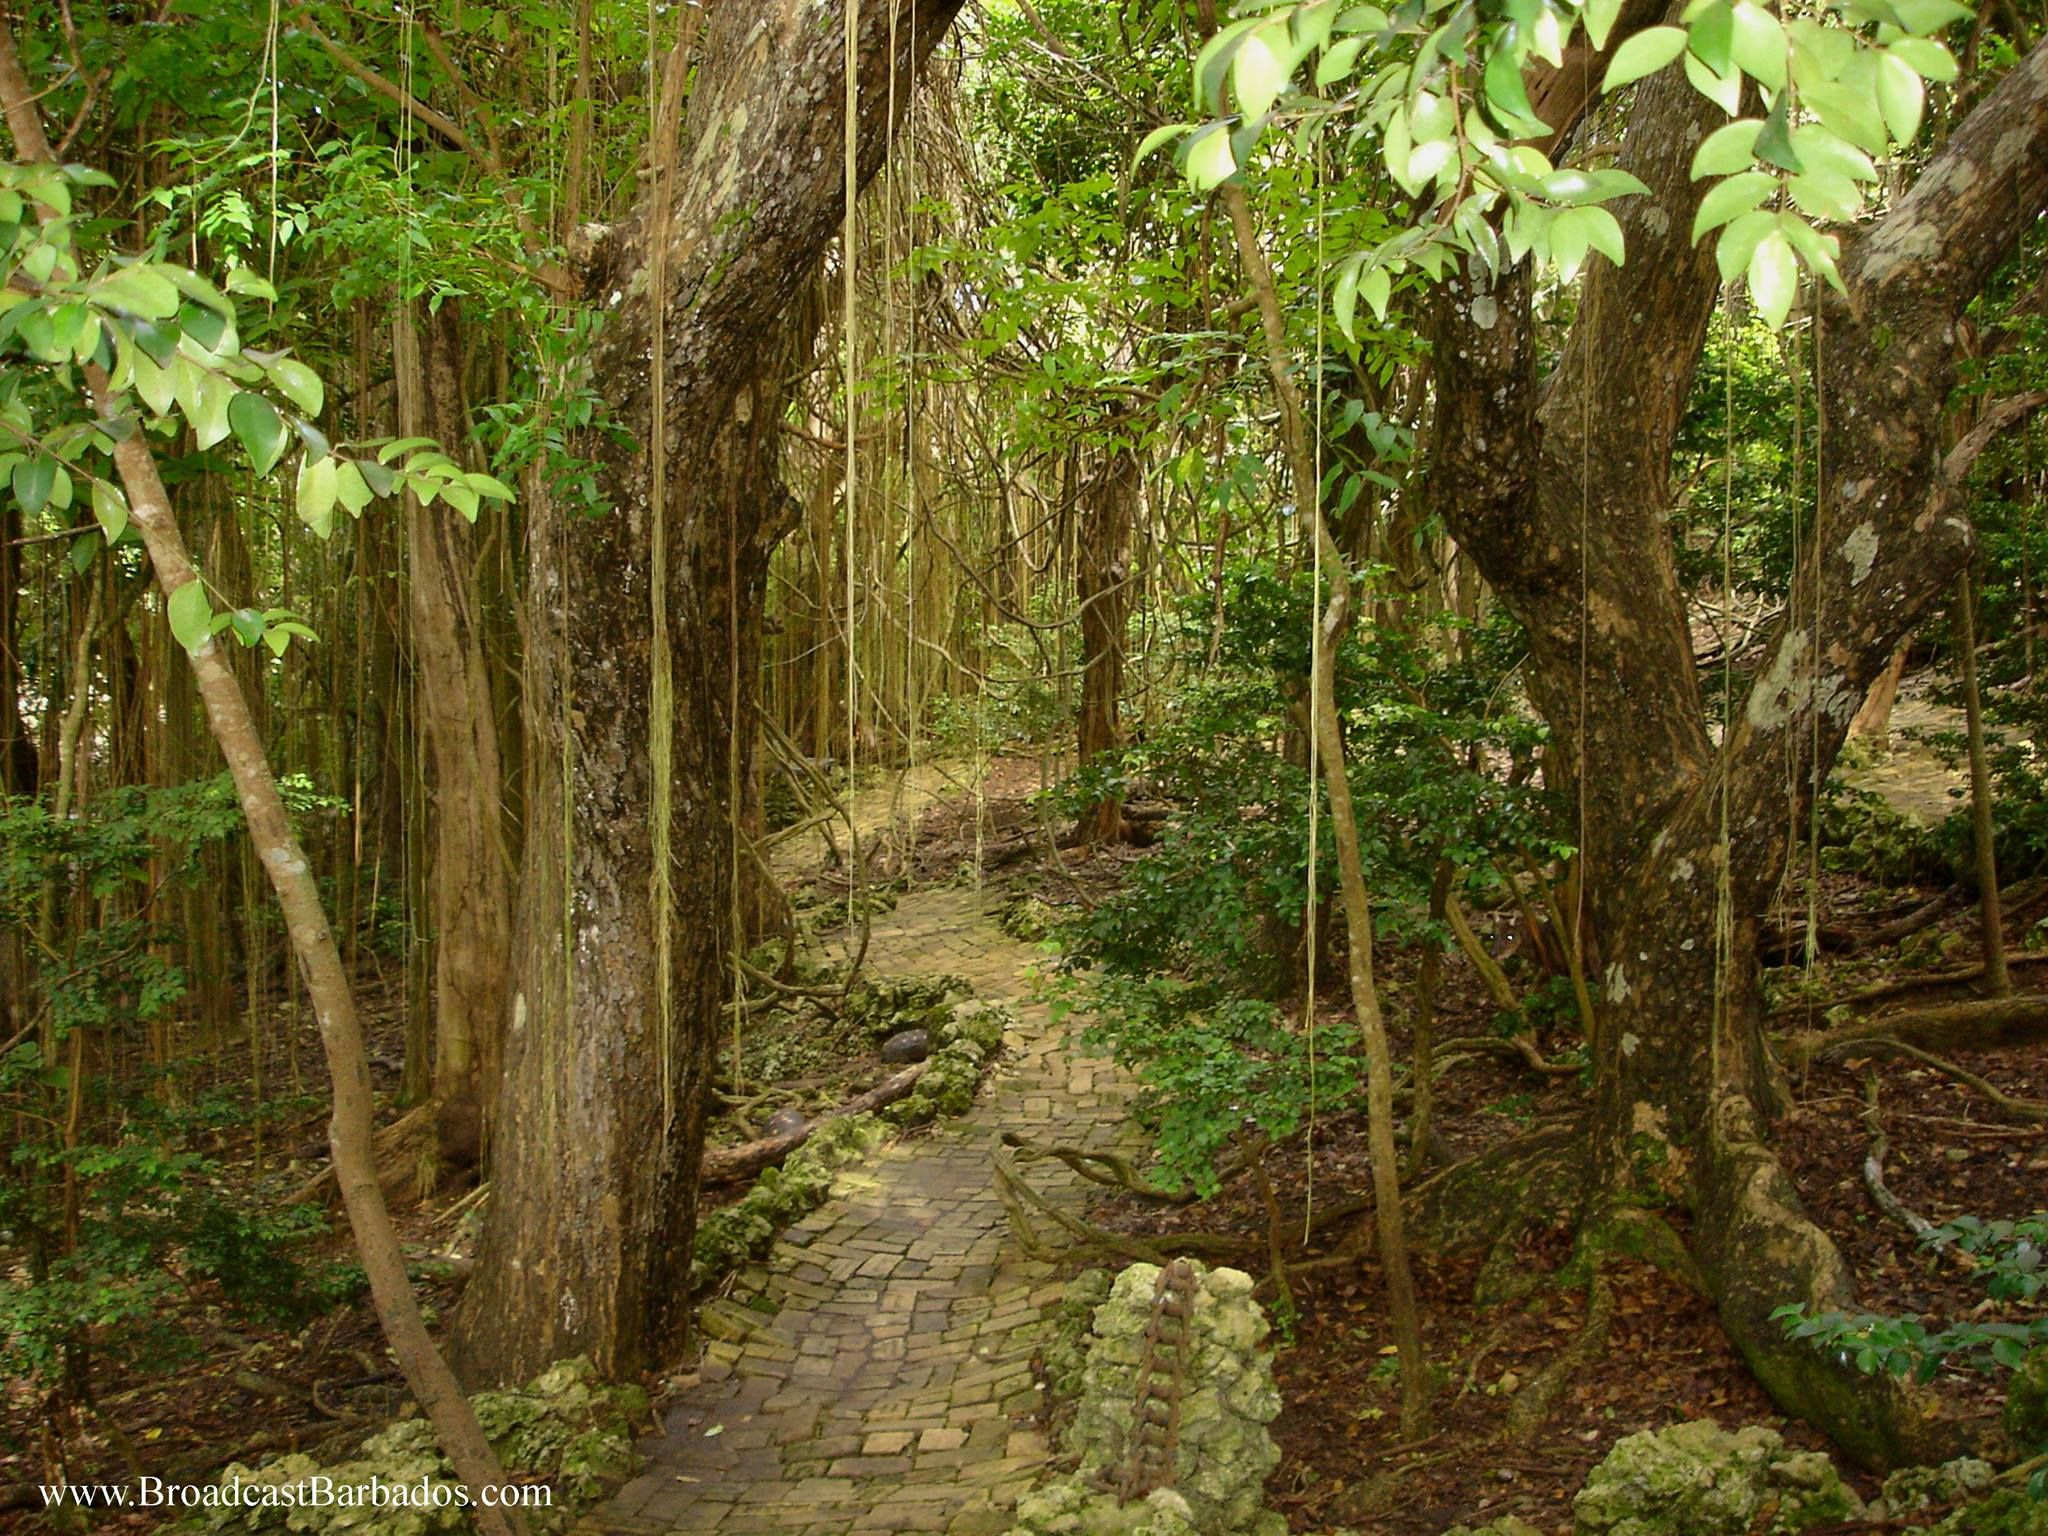 Foot path at The Barbados Wildlife Reserve